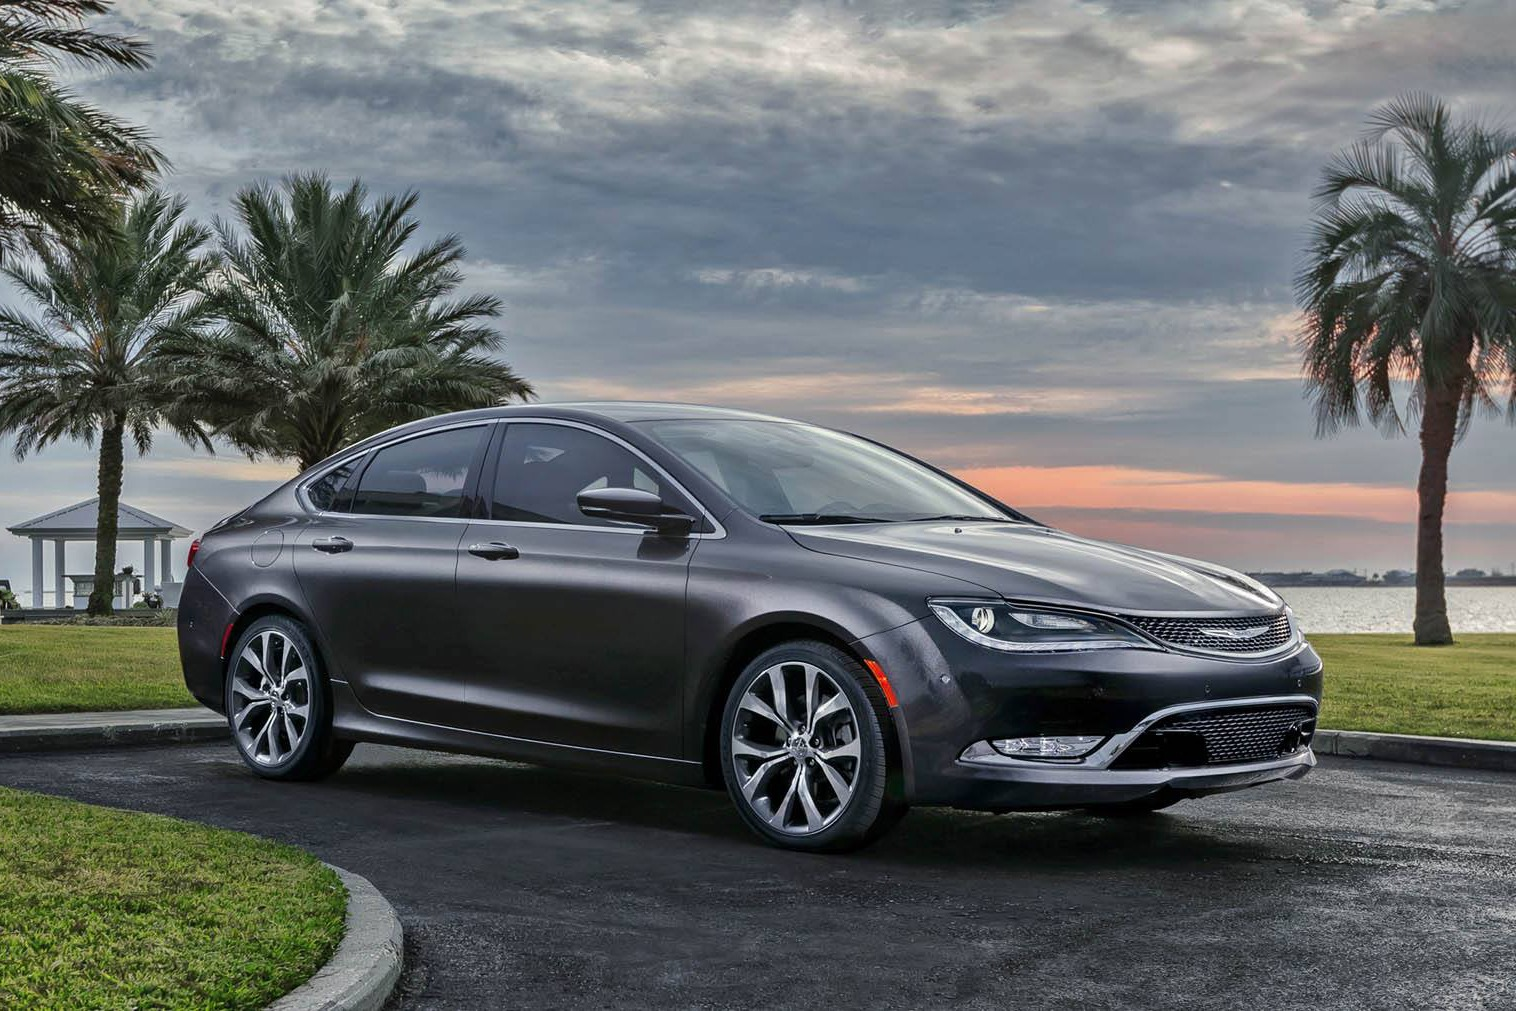 Pictures of chrysler 200 #12